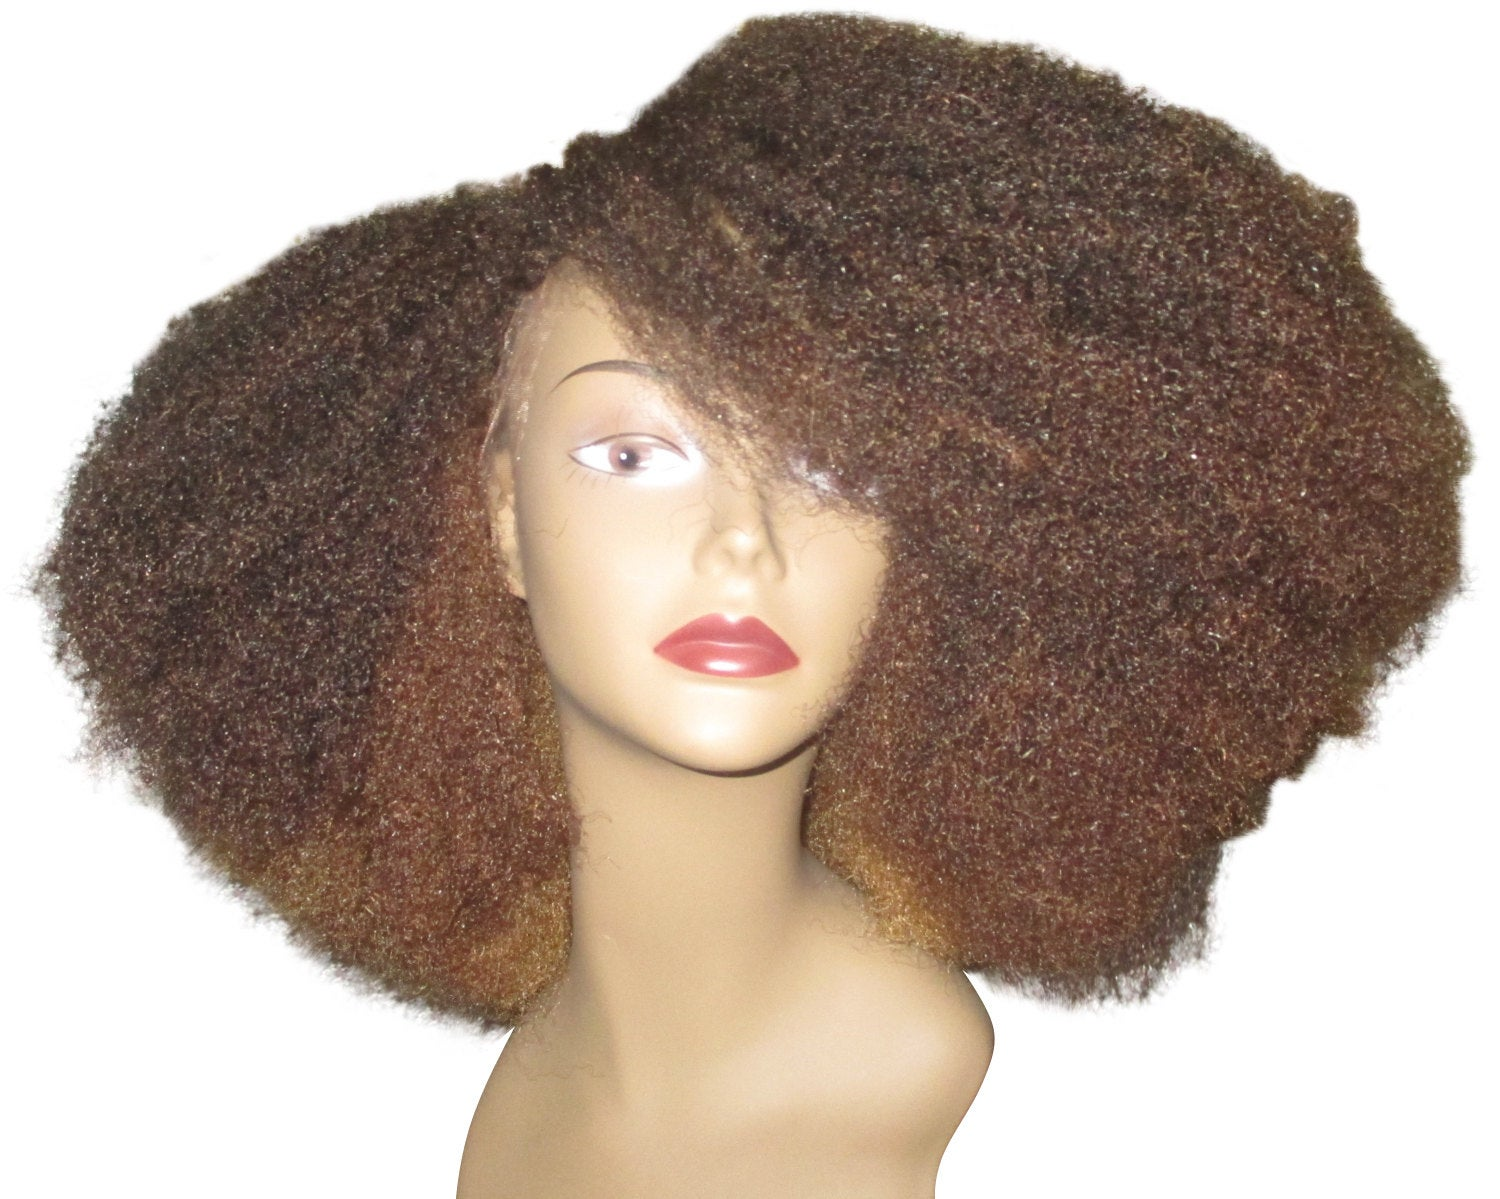 Essence Wigs Gorgeous Caramel Honey Brown Brulee Lace front Wig Layered Bohemian Vibe Afro Wig Kink Blow Out Hair